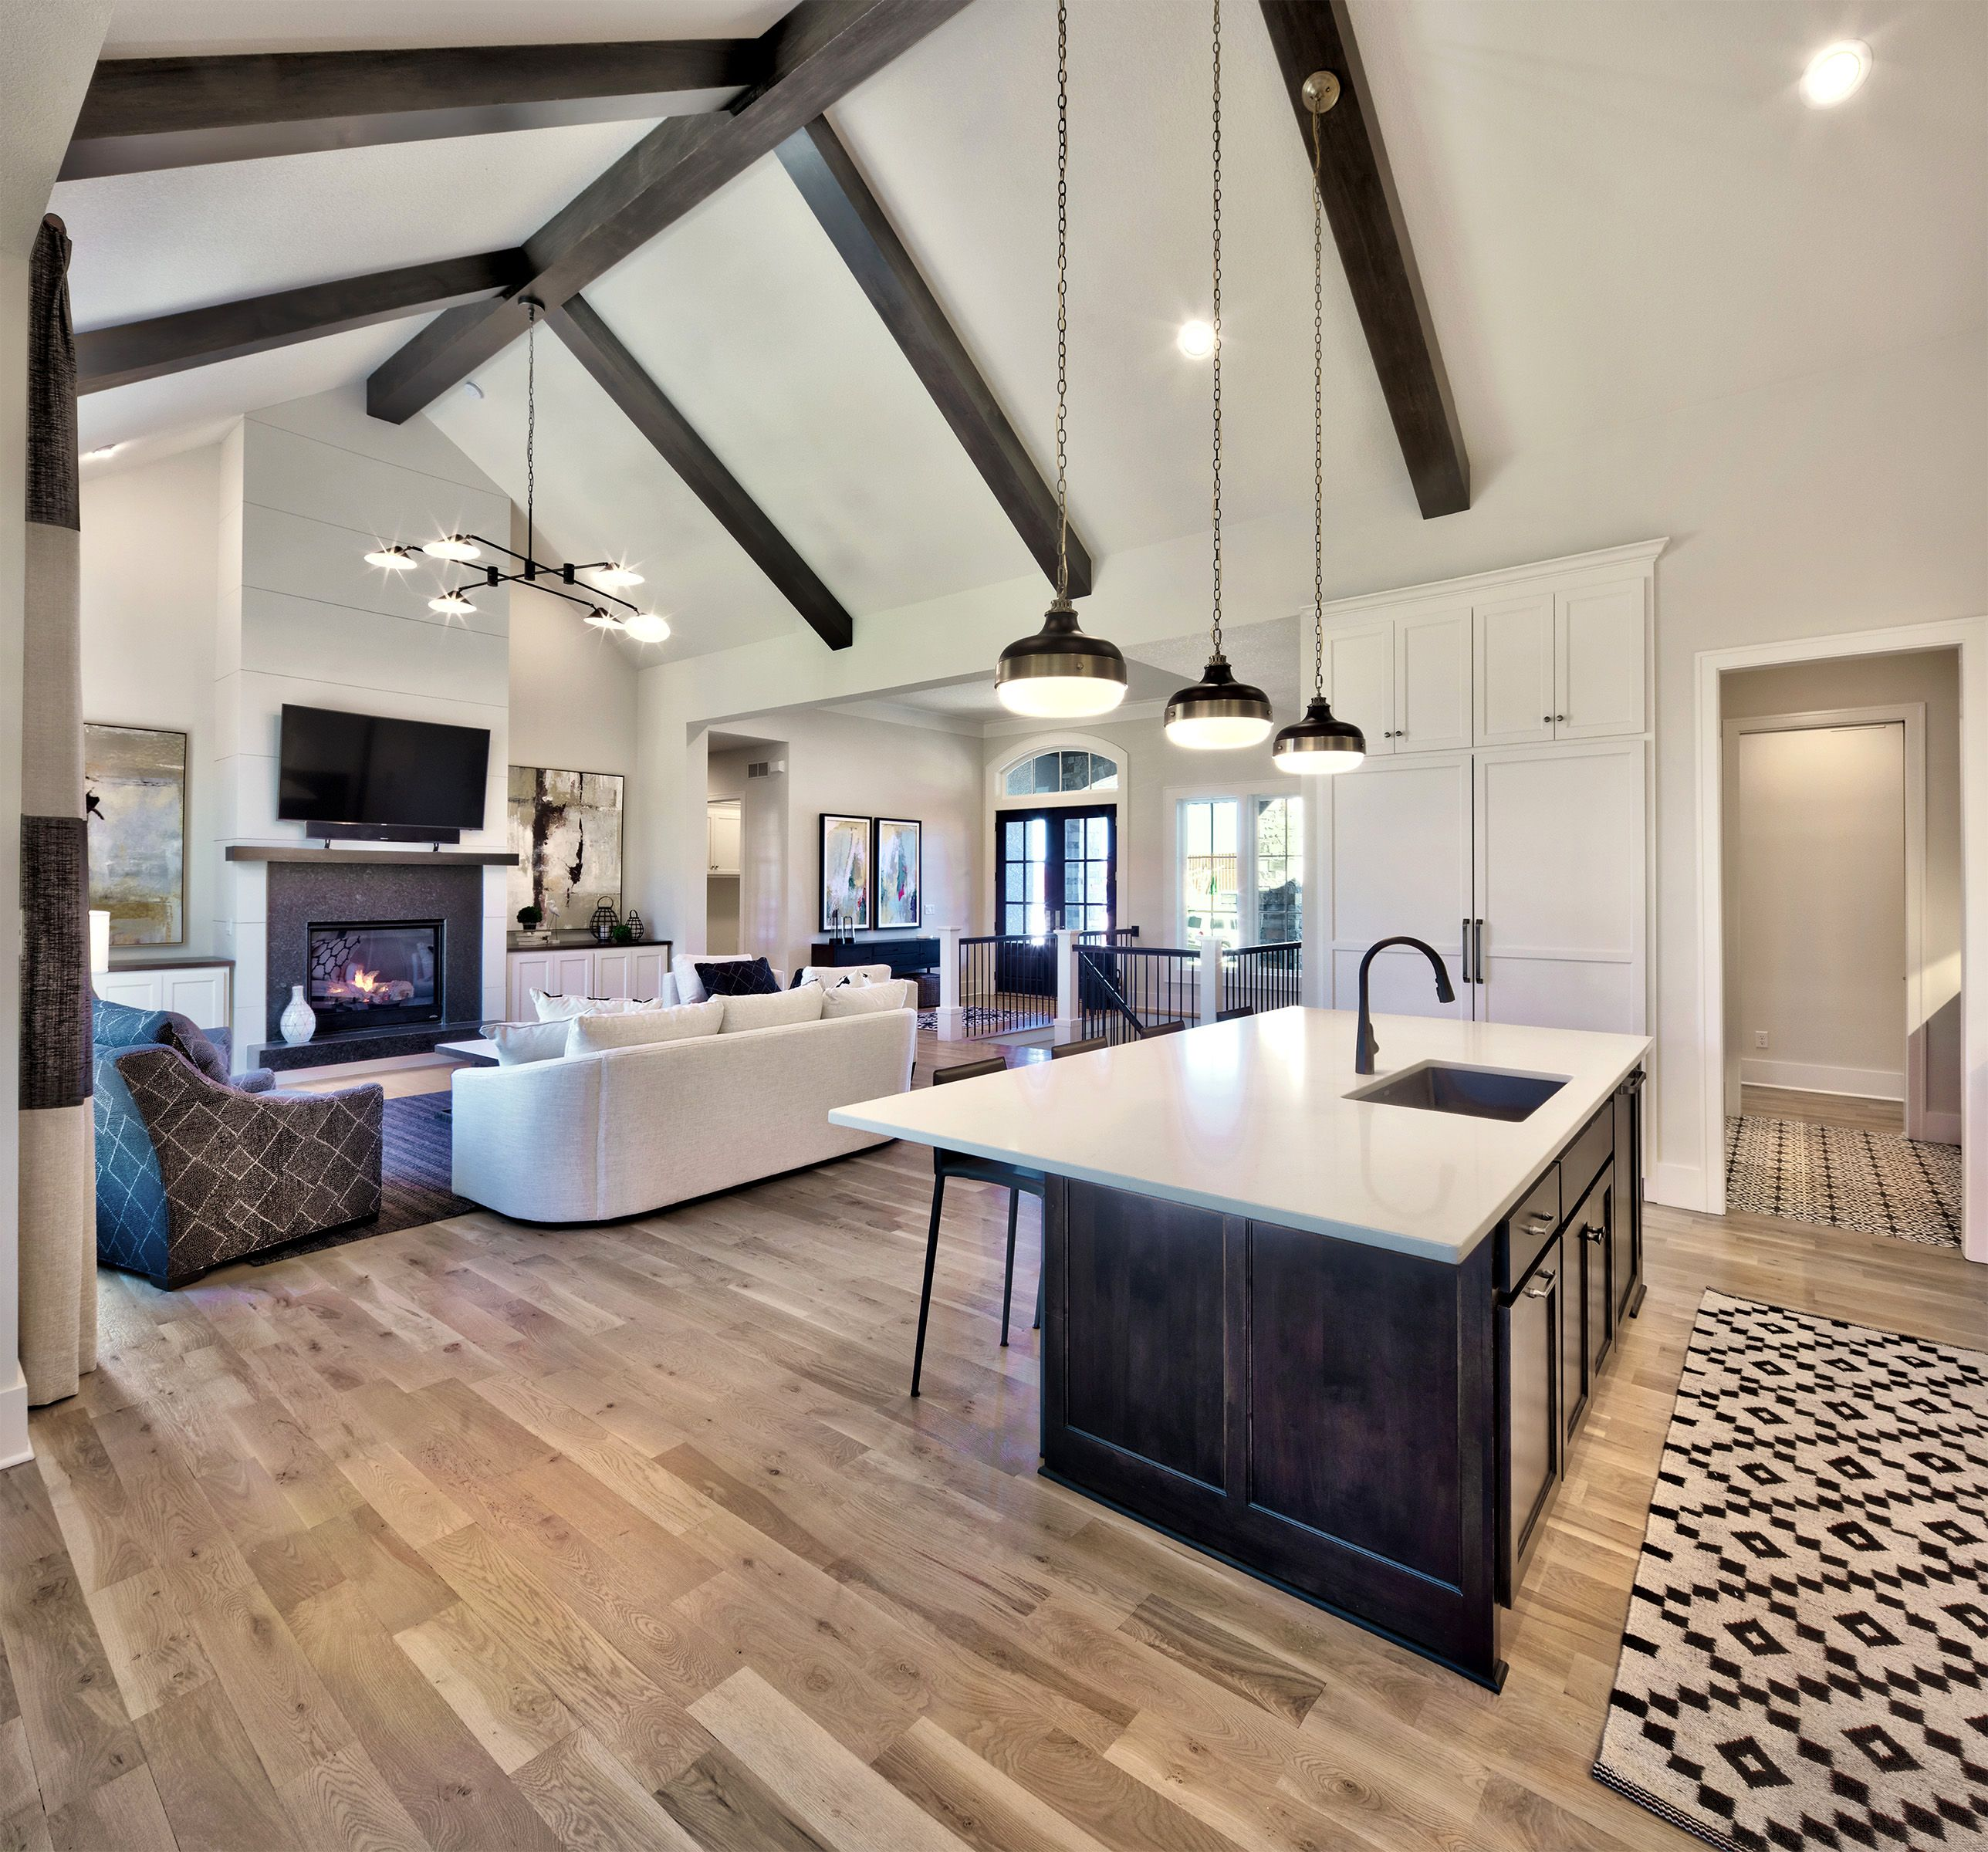 open concept home kitchen and living room with tall